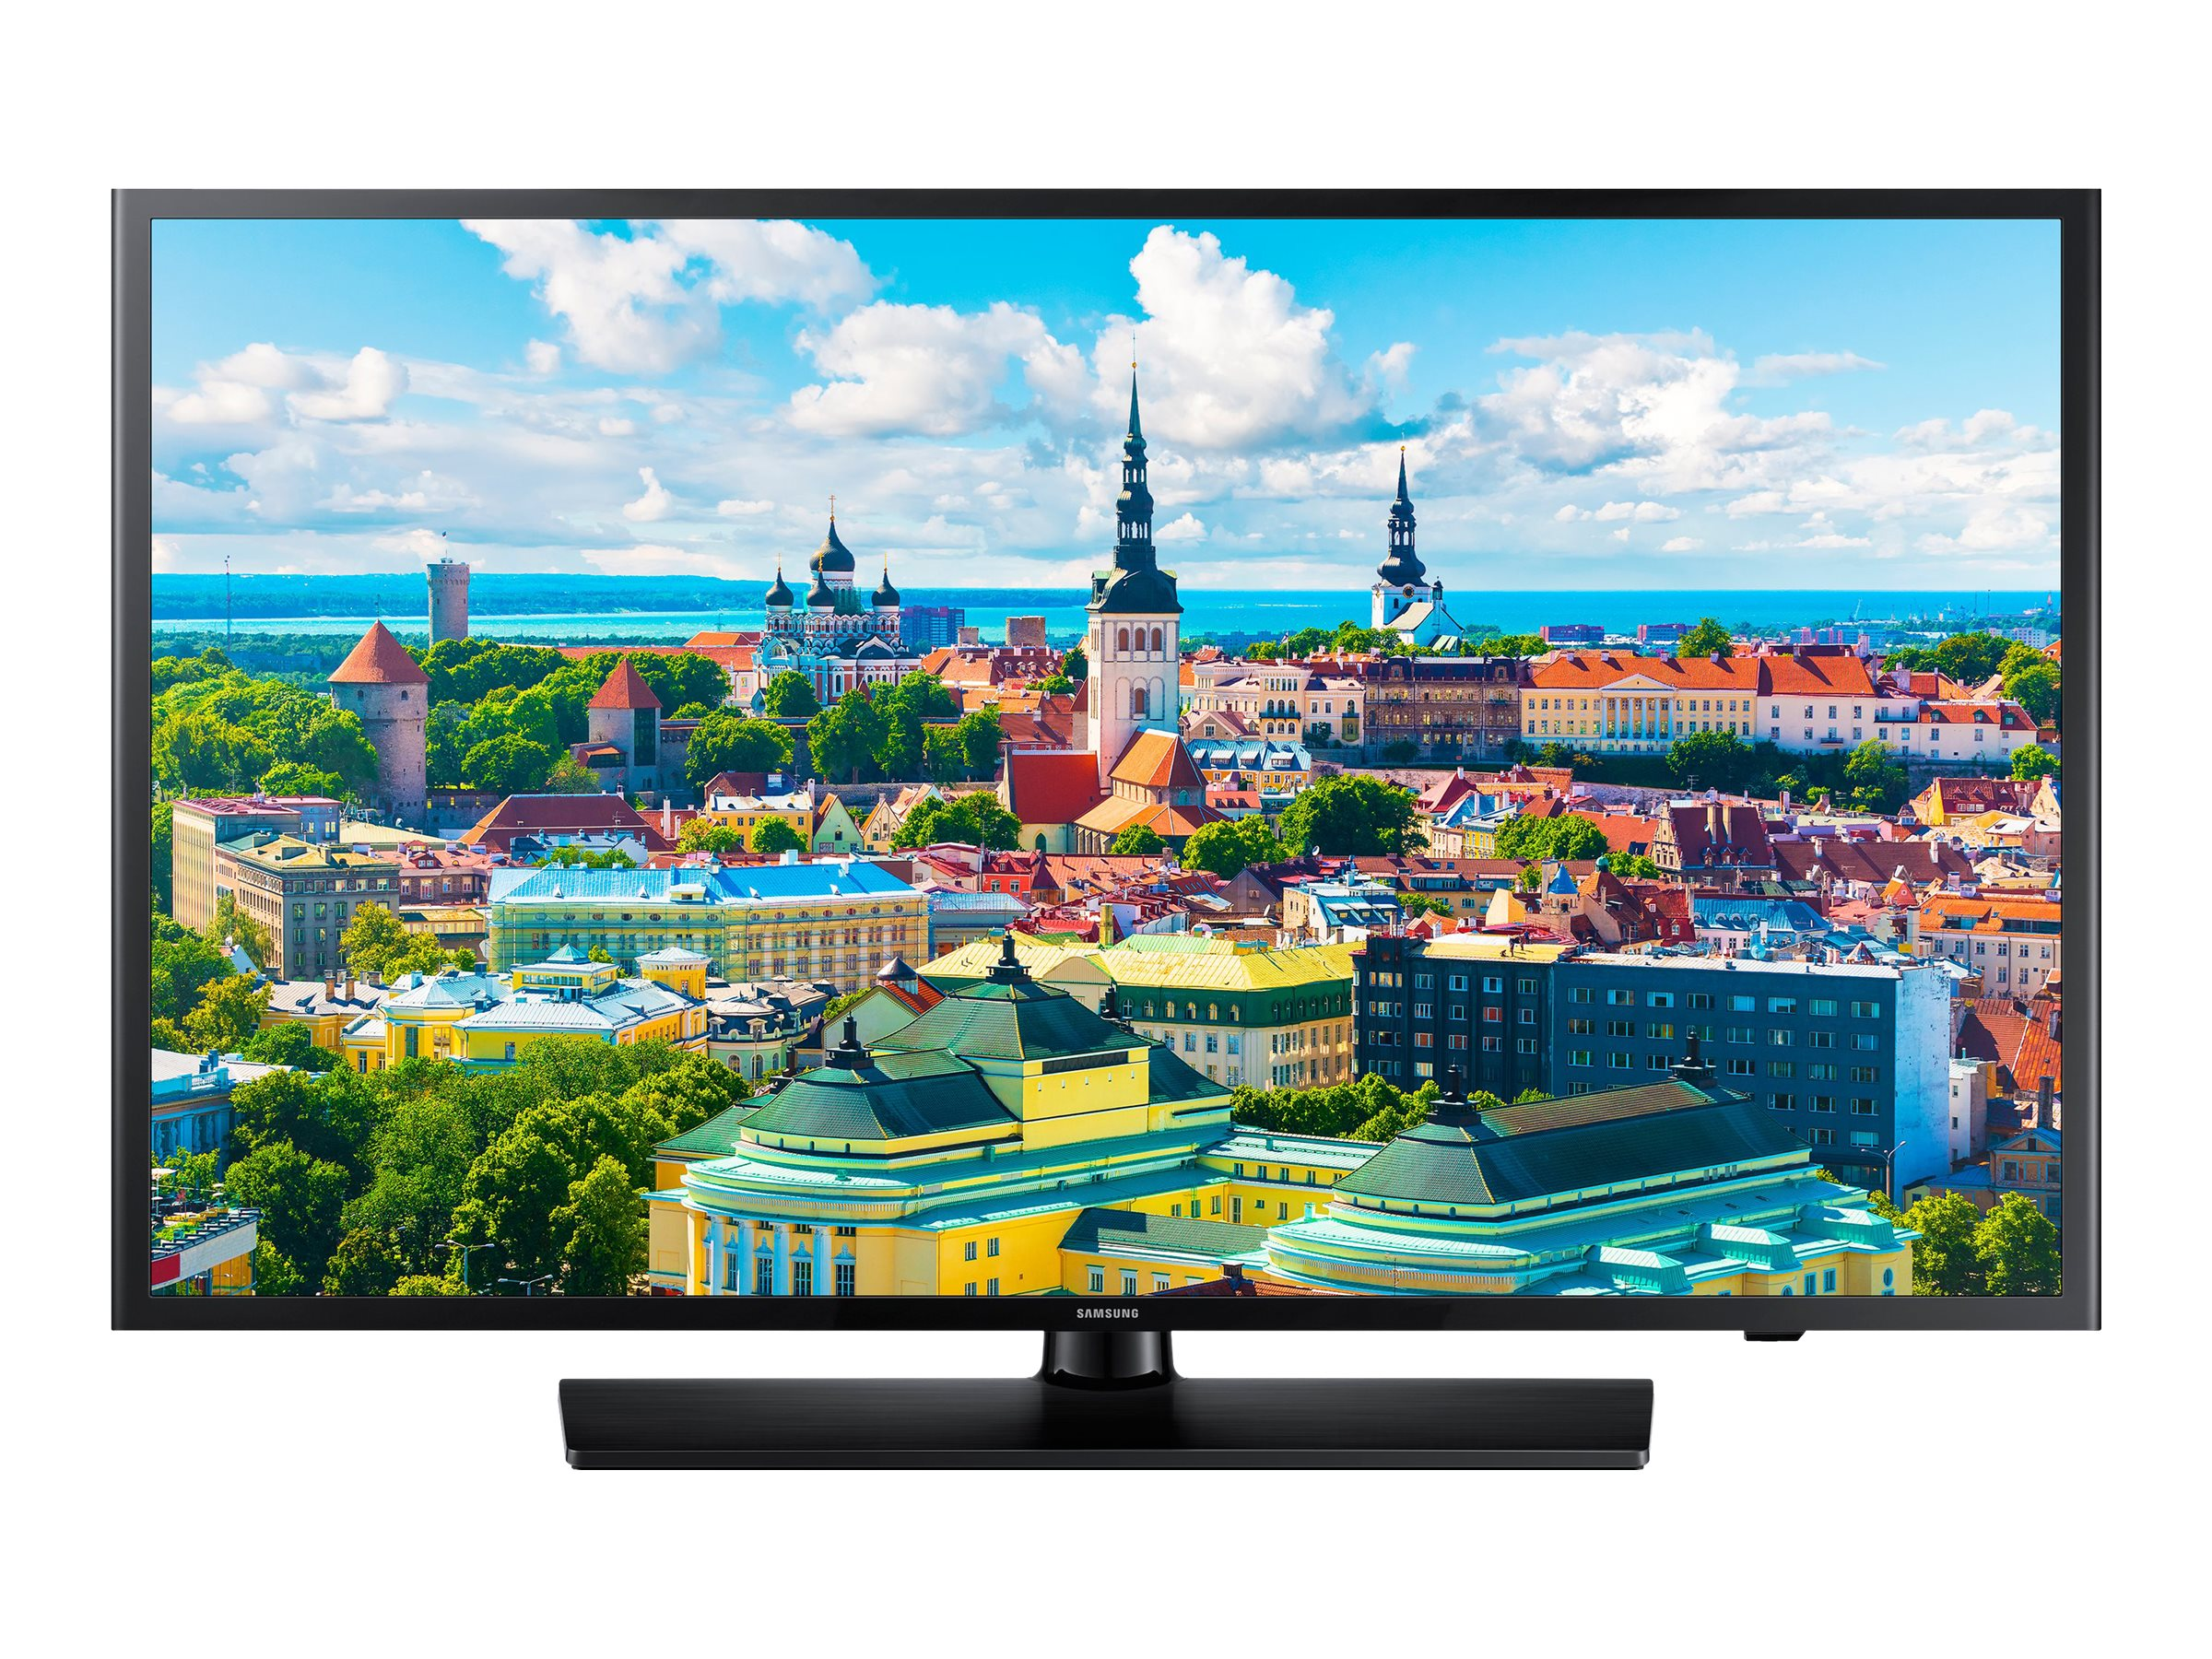 Samsung 40 478 Series Full HD LED-LCD Hospitality TV, Black, HG40ND478SFXZA, 30650207, Televisions - LED-LCD Commercial